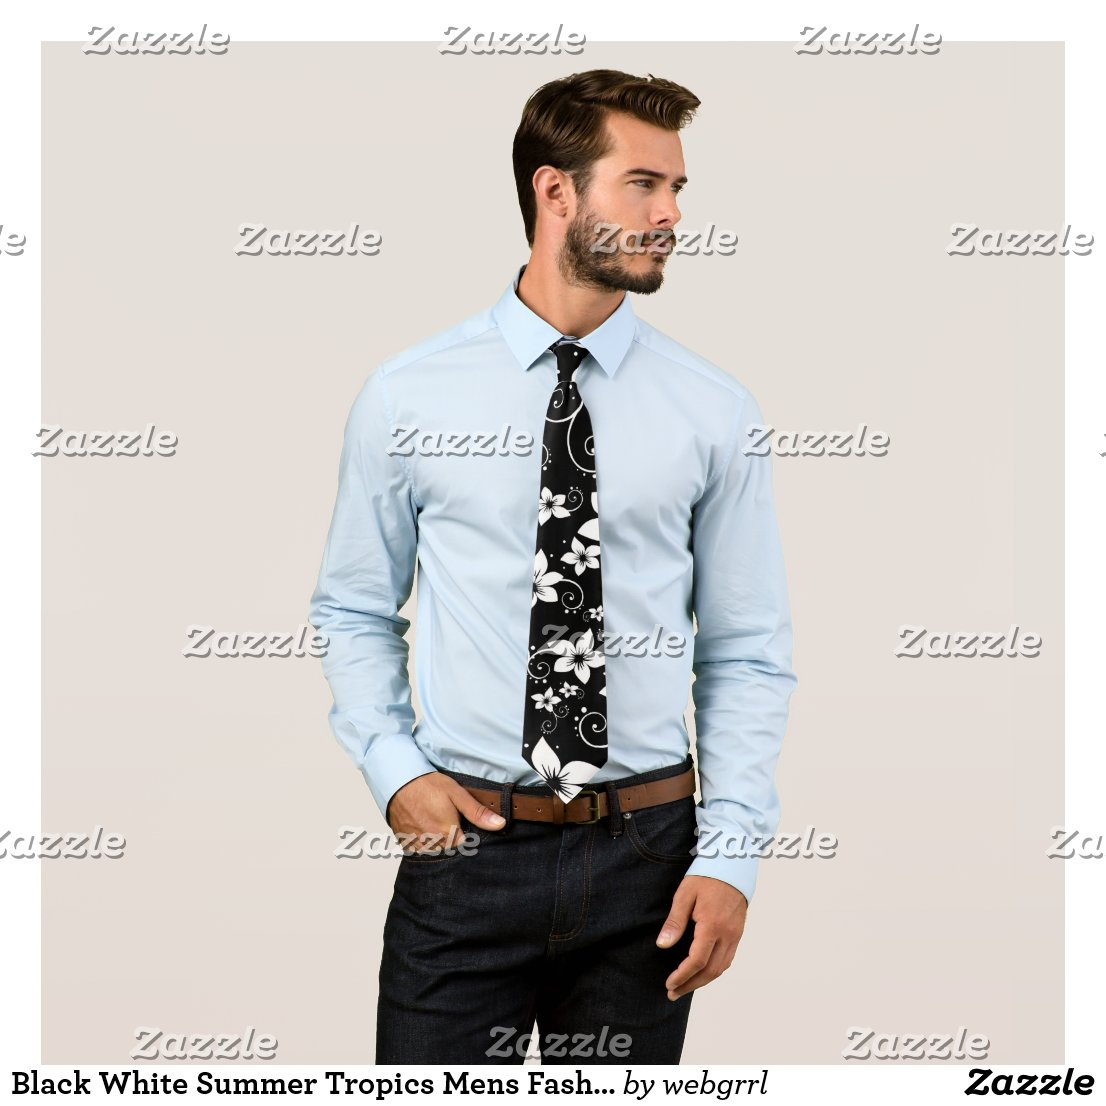 Black White Summer Tropics Mens Fashion Necktie